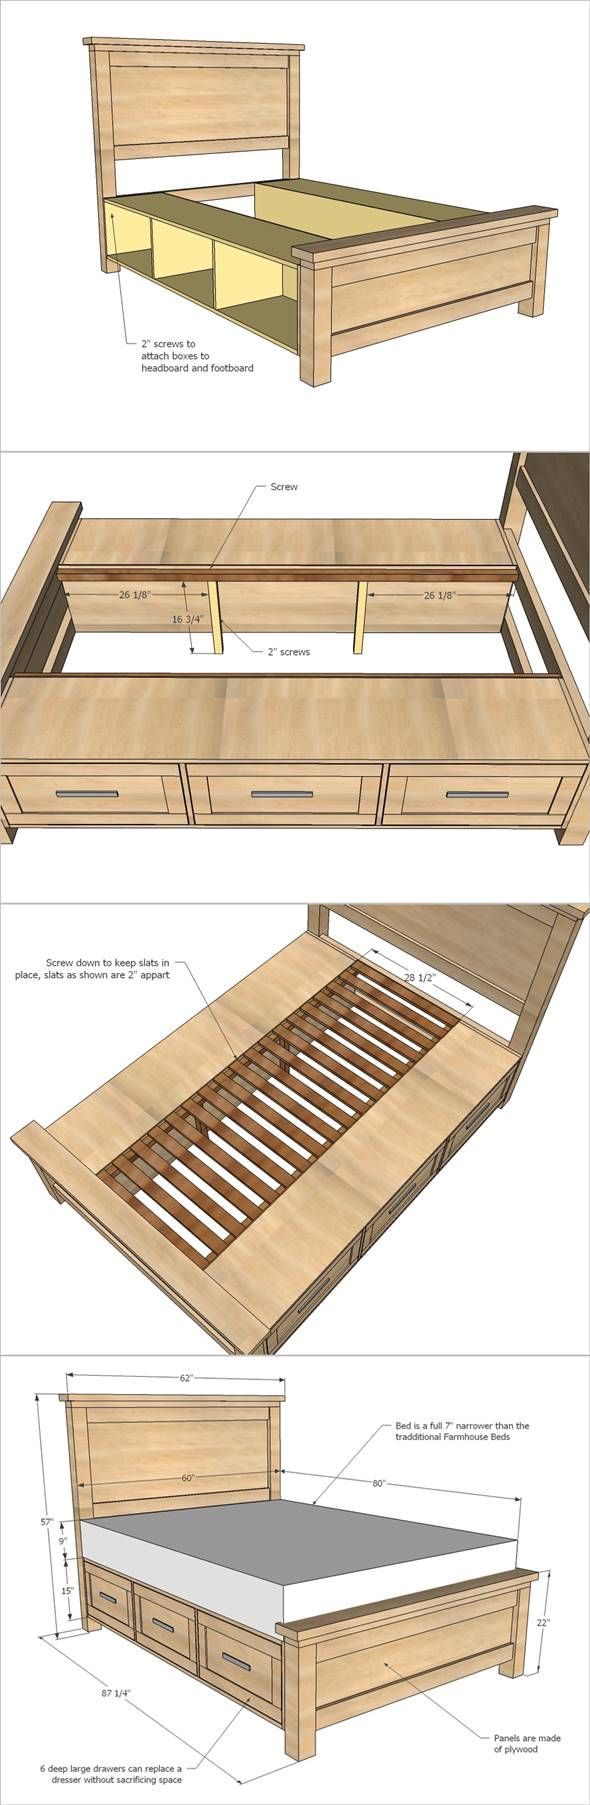 Diy wood bed frame plans - Creative Ideas How To Build A Farmhouse Storage Bed With Drawers